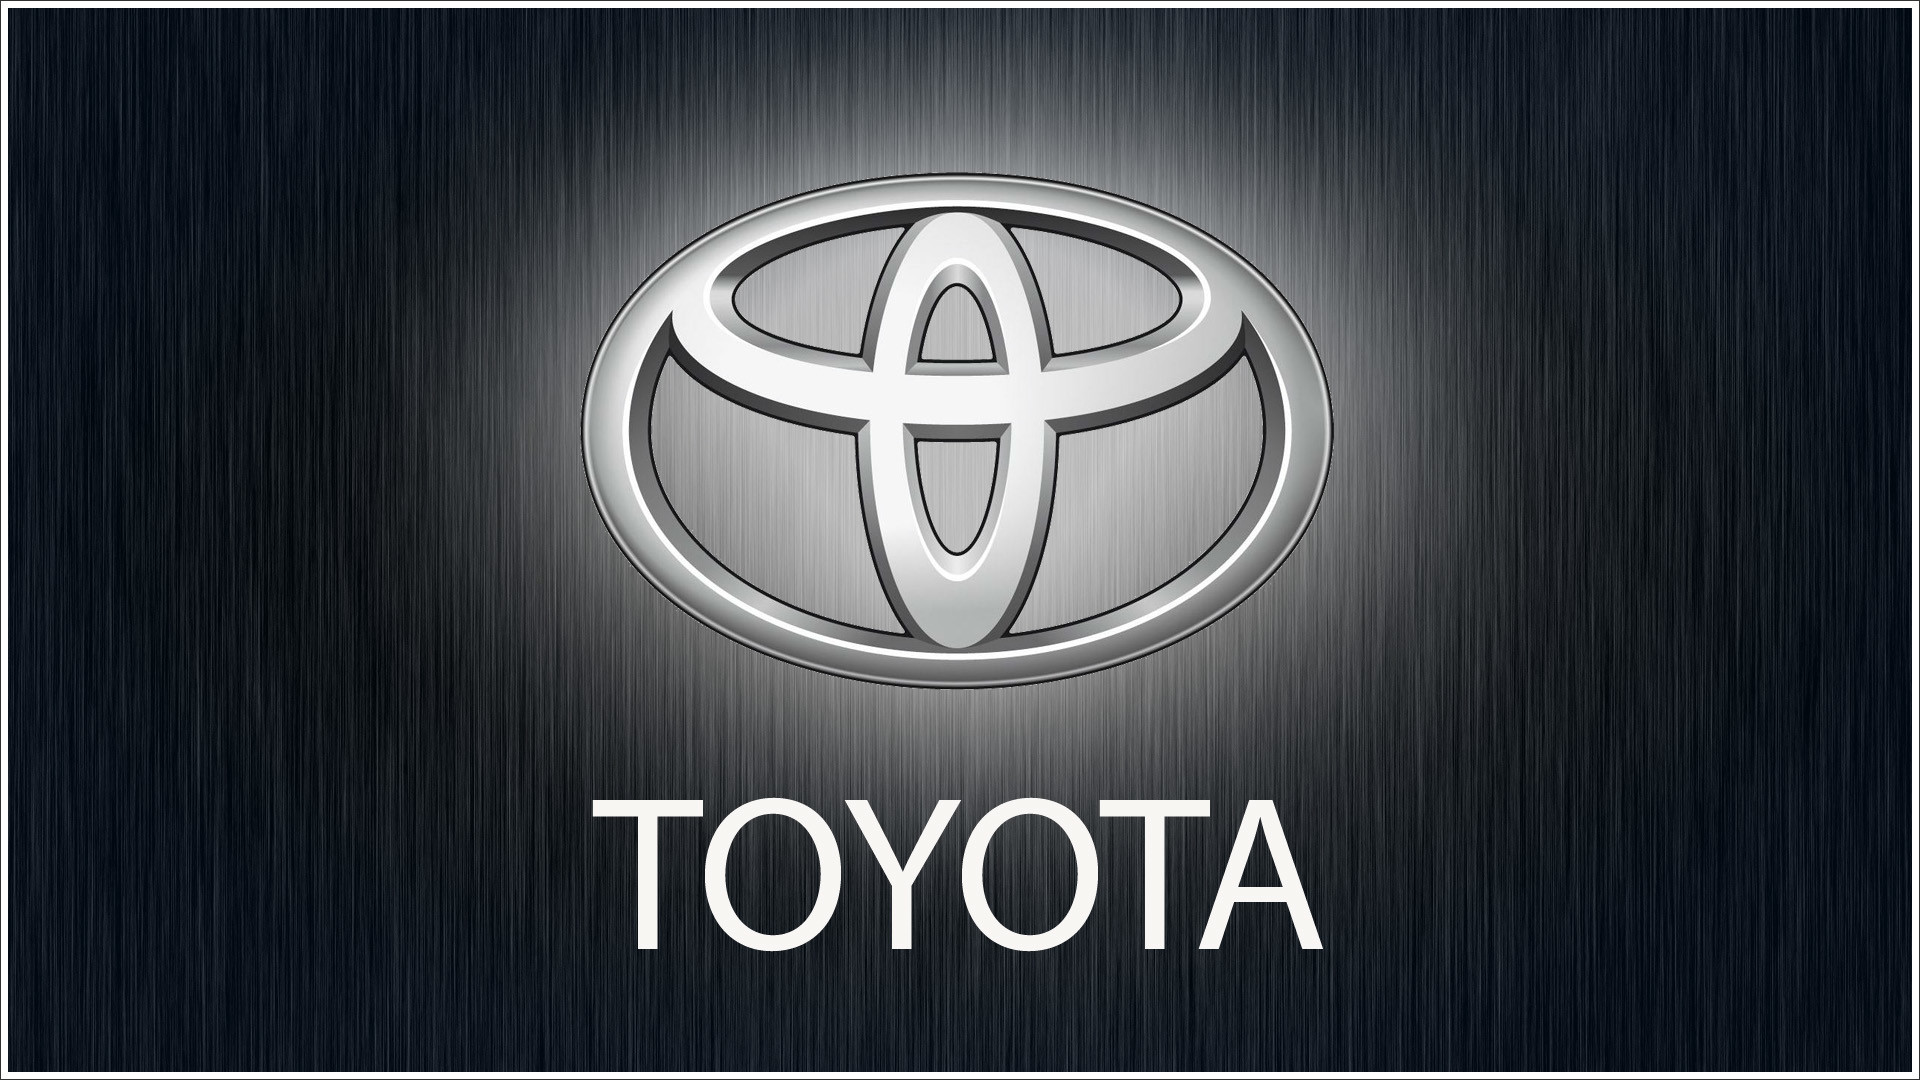 toyota logo wallpaper 55 images